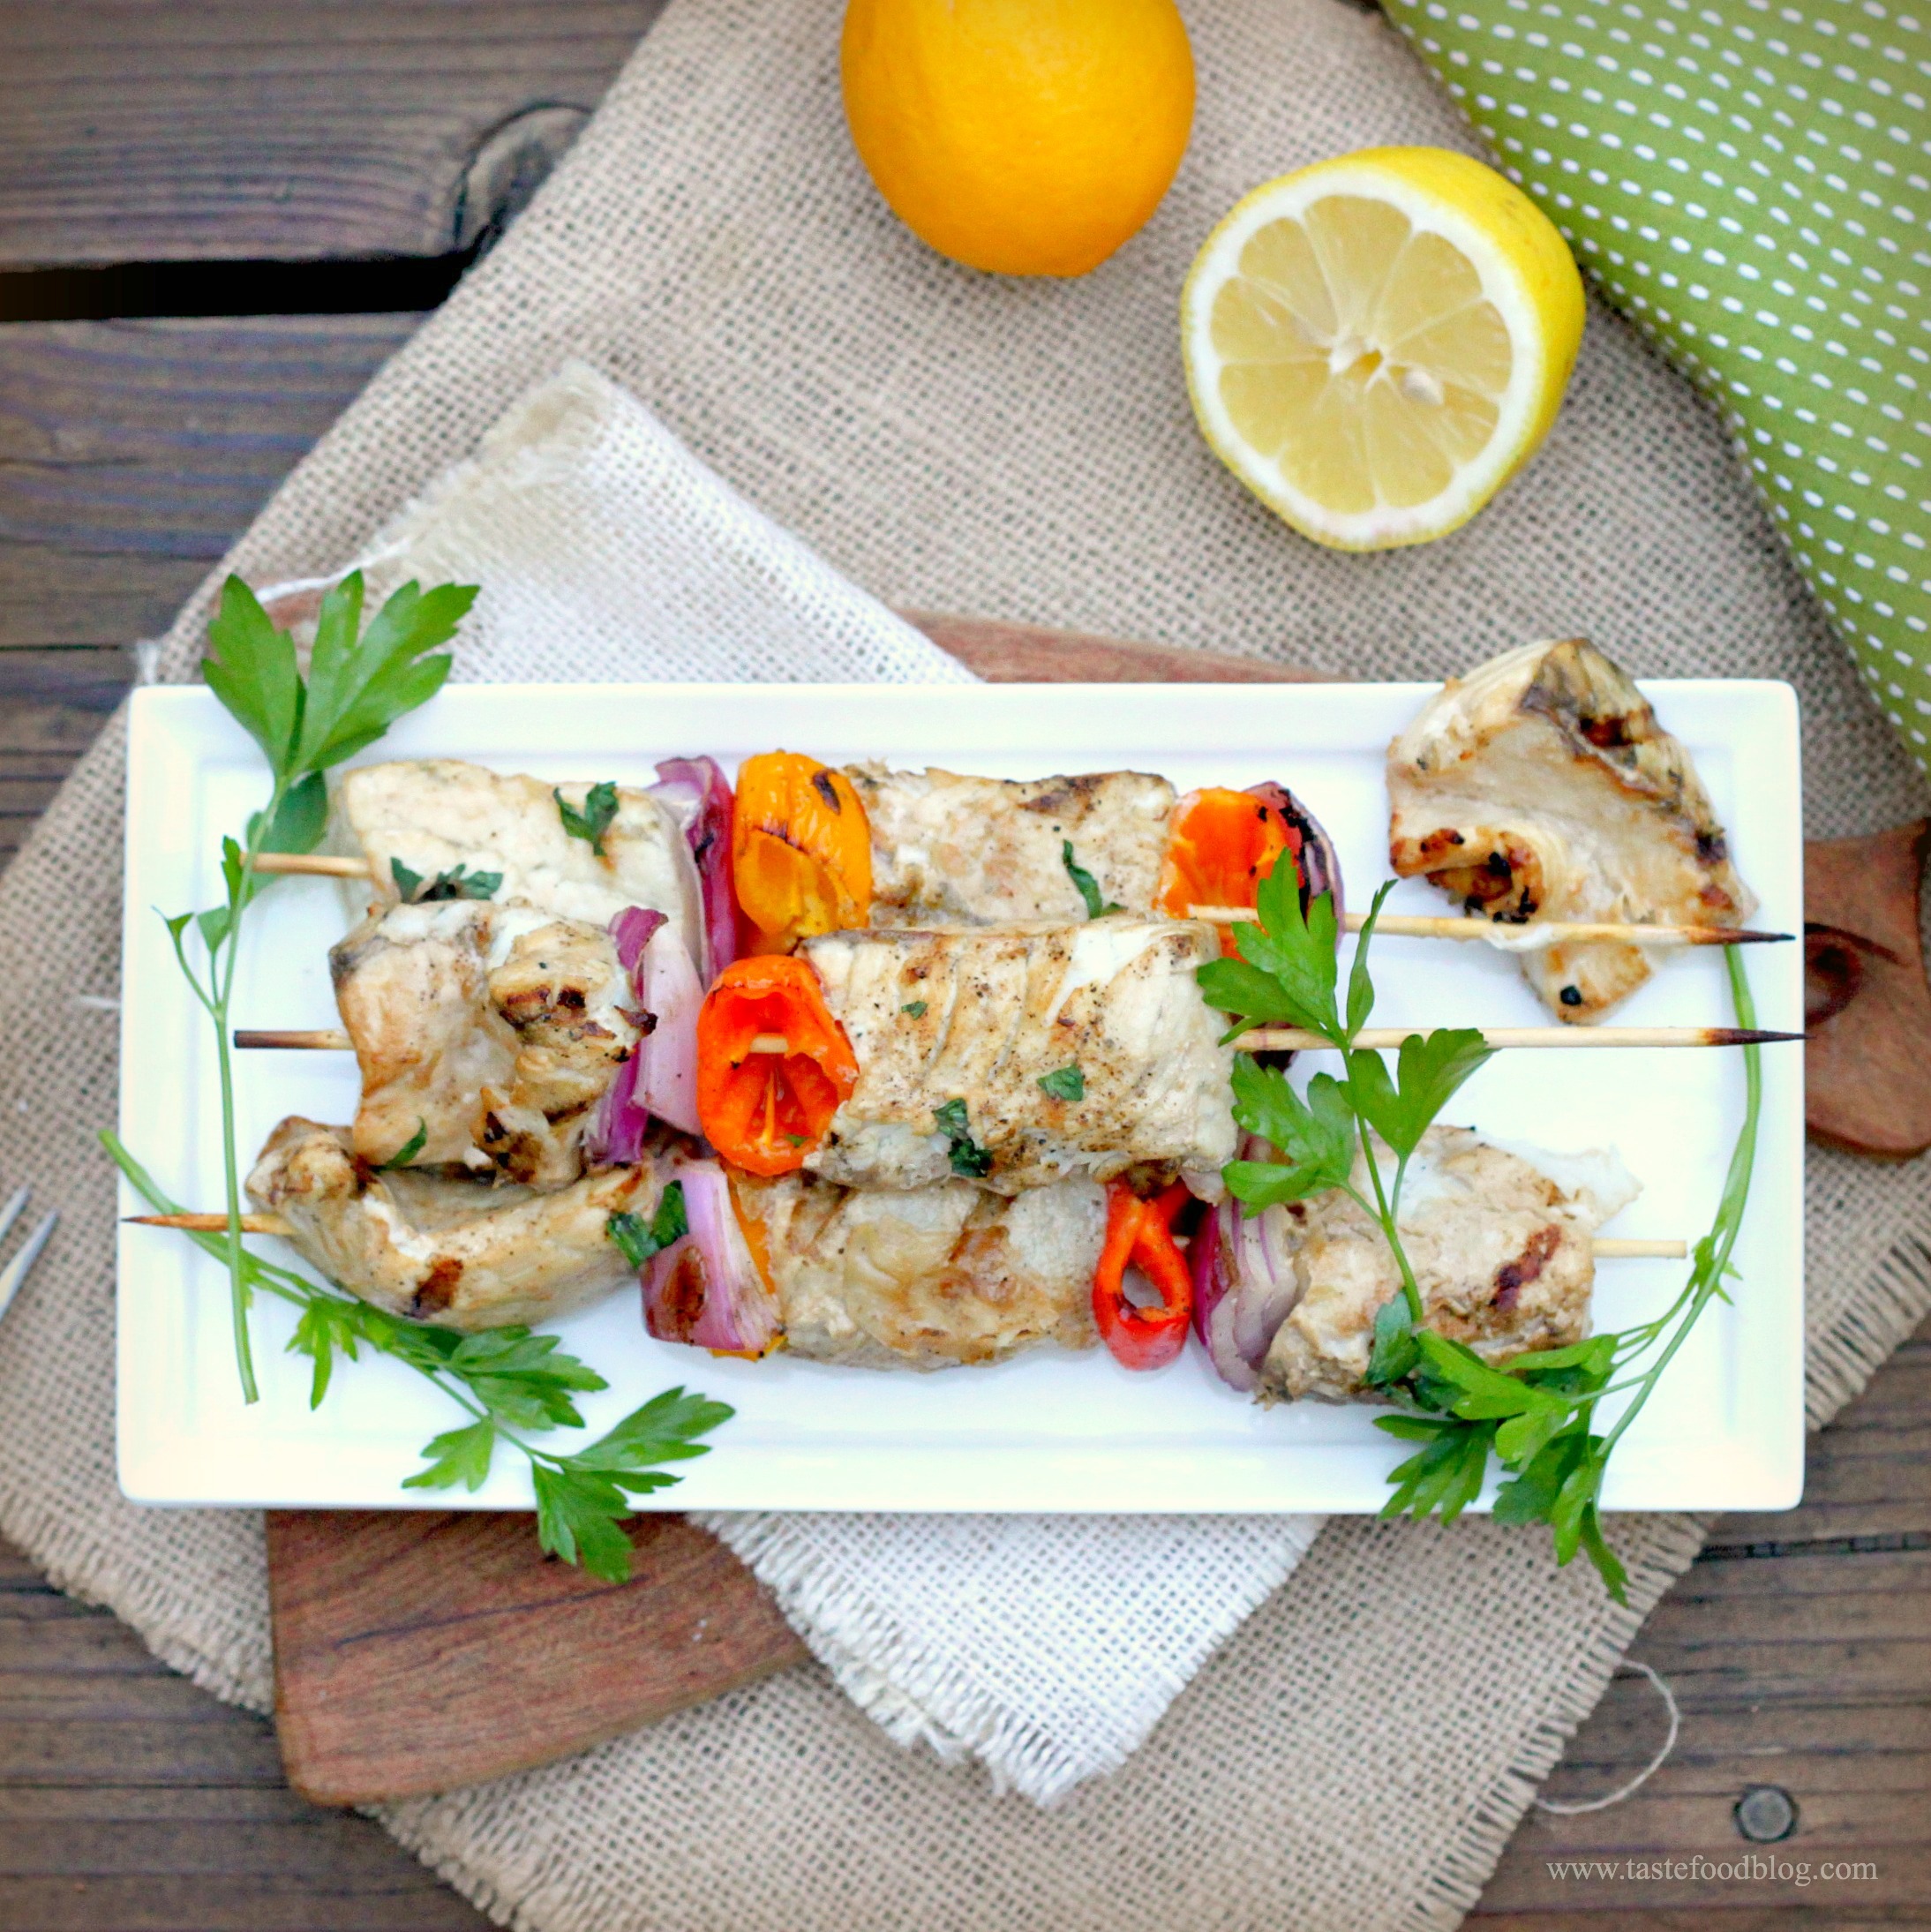 Grilled fish and vegetable skewers with barramundi tastefood for What vegetables go with fish